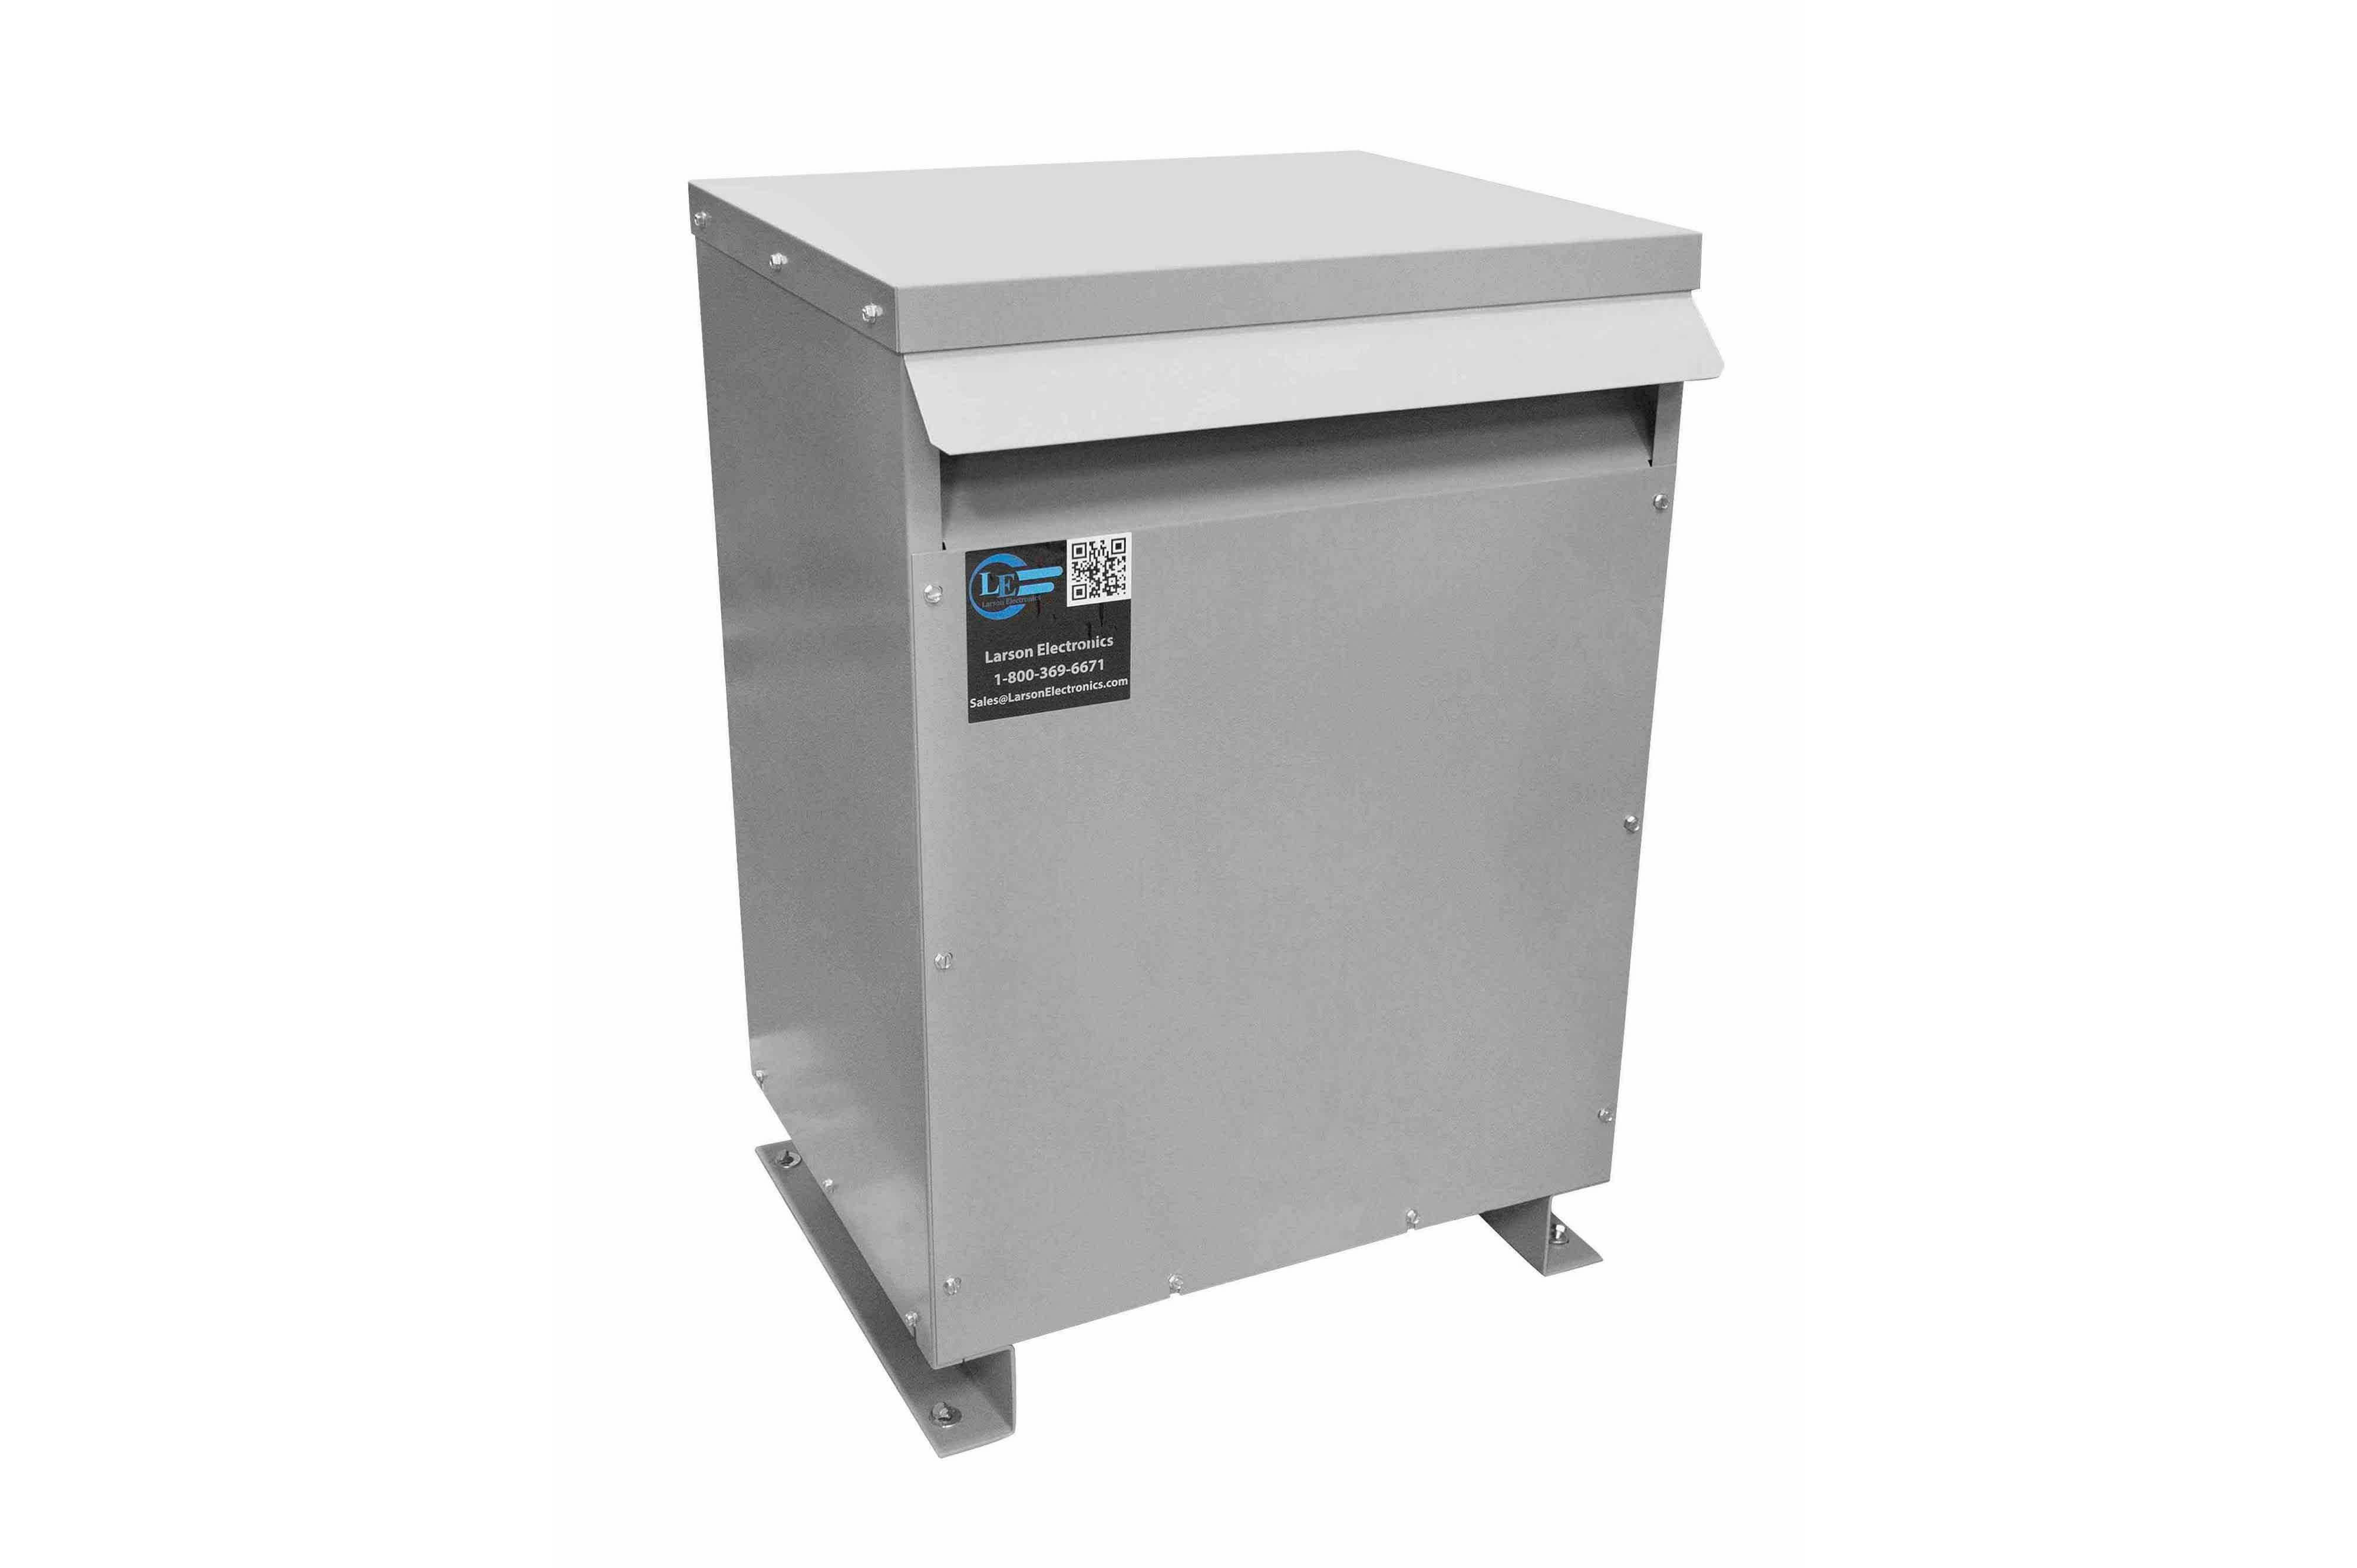 25 kVA 3PH DOE Transformer, 220V Delta Primary, 480Y/277 Wye-N Secondary, N3R, Ventilated, 60 Hz